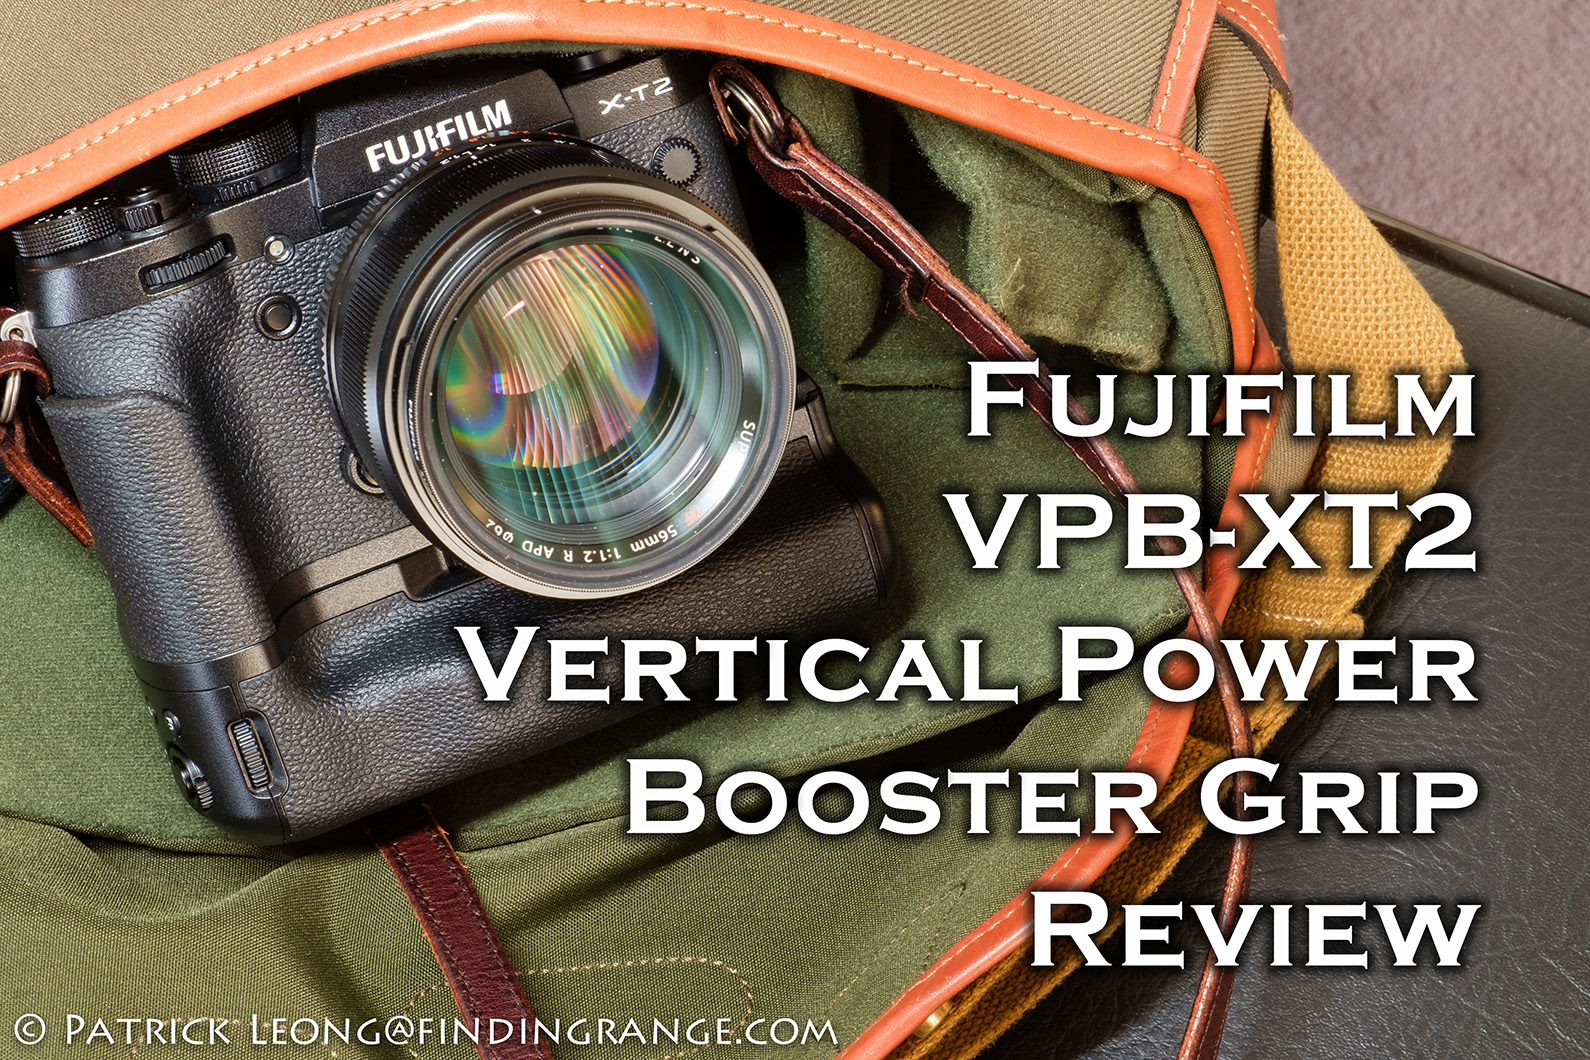 fujifilm-vpb-xt2-vertical-power-booster-grip-review-1